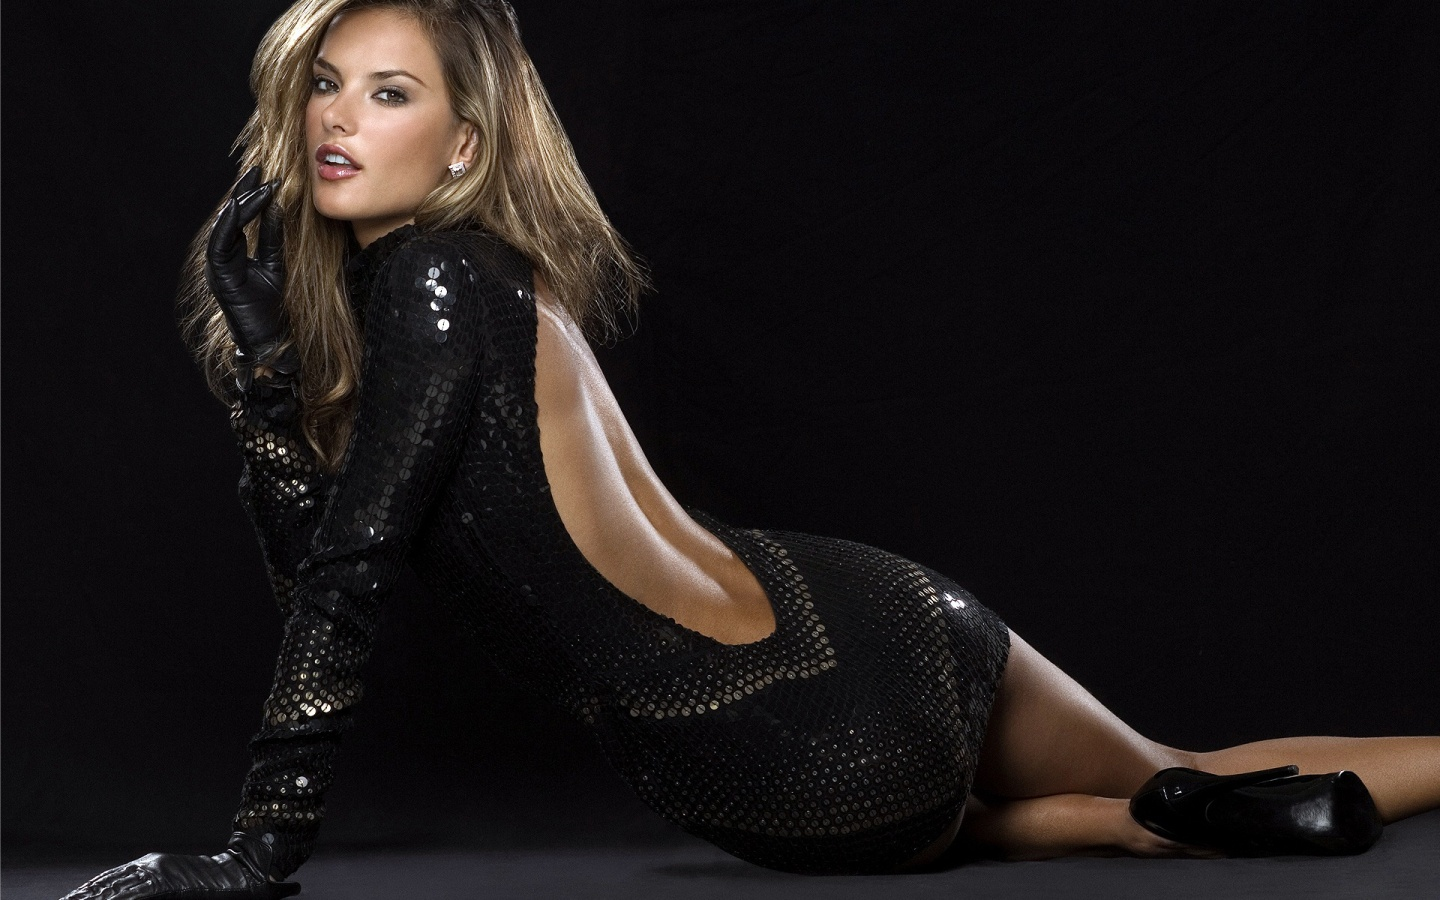 1440x900 Alessandra Ambrosio Model Sexy HD Wallpapers - All HD Wallpapers